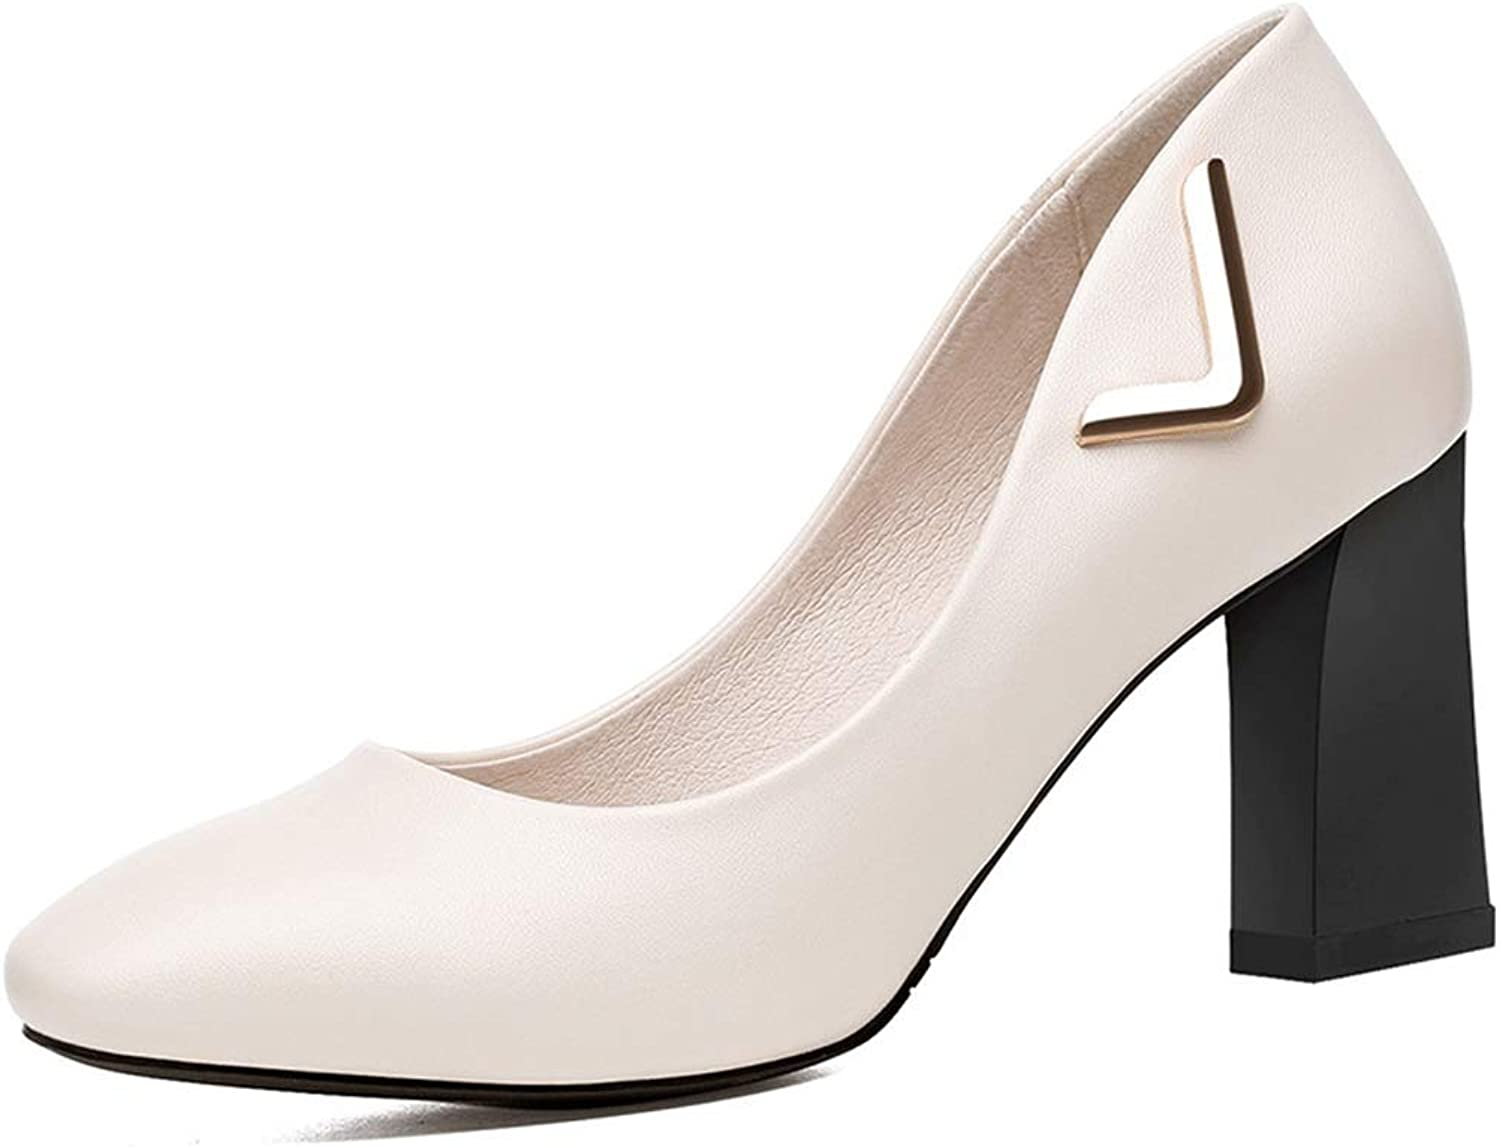 Spring High Heels New Thick with Single shoes Female High-Heeled Commuter OL Fashion with Women's shoes (color   White, Size   34)